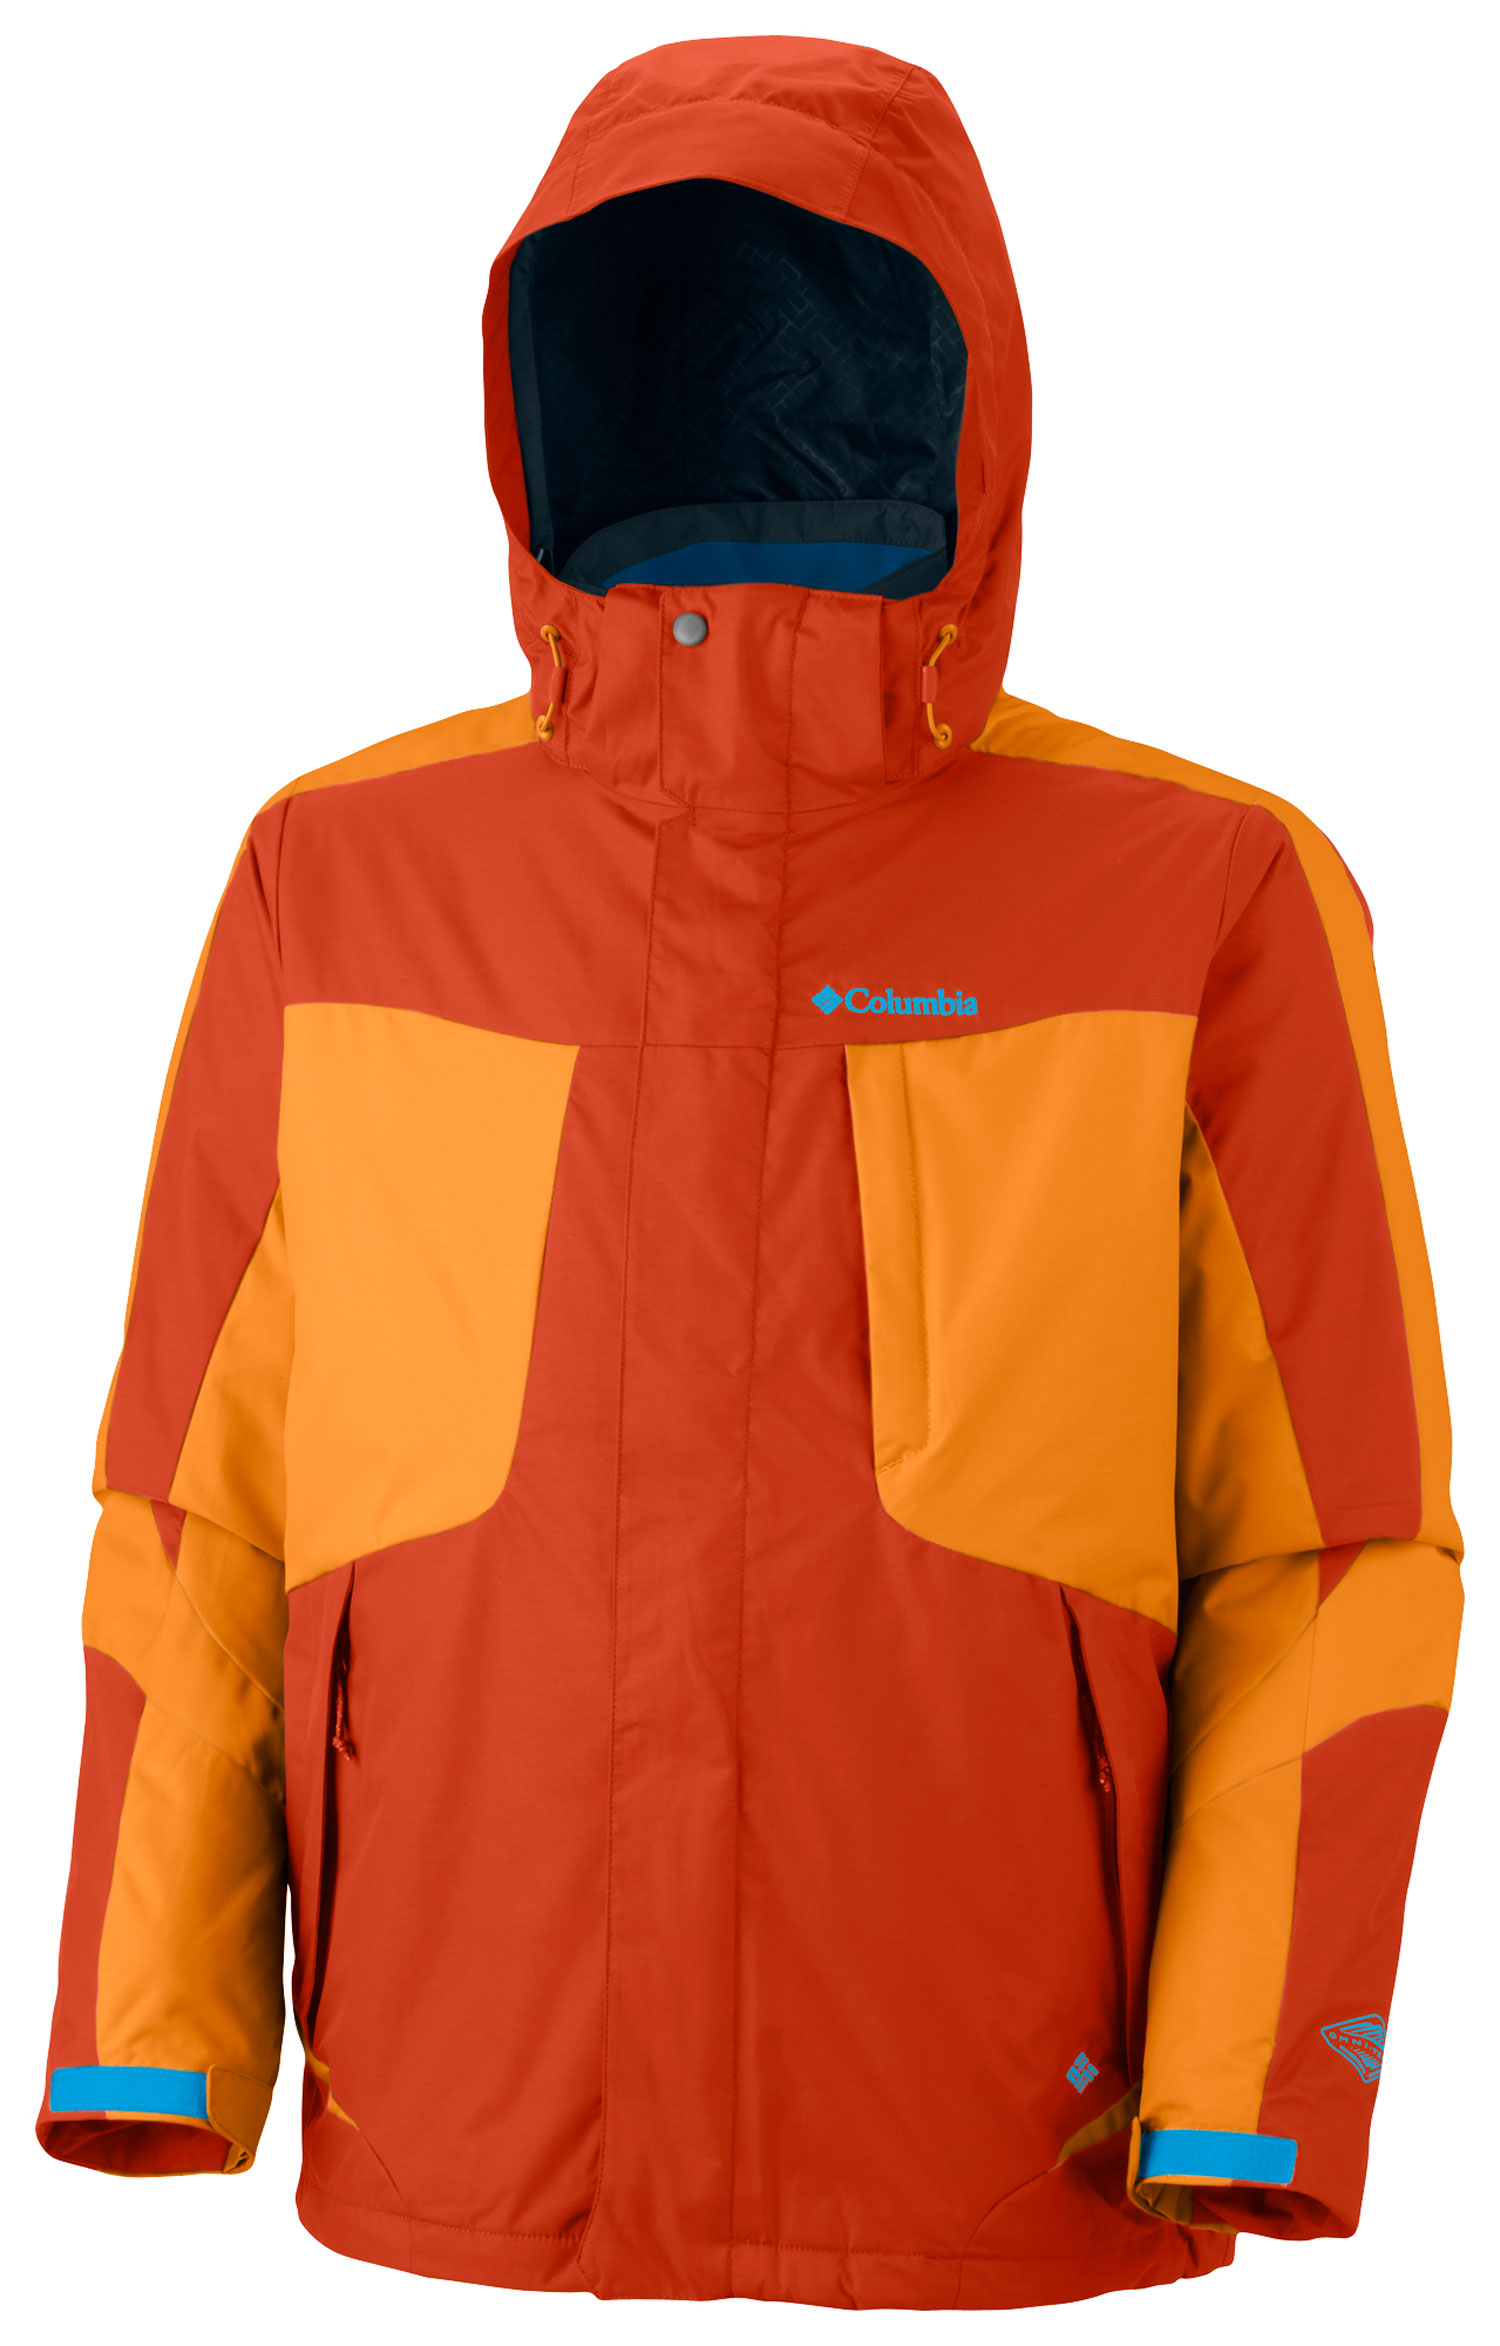 Ski Key Features of the Columbia Whirlibird II Interchange Ski Jacket: FABRIC Shell: 100% nylon Legacy twill, 100% nylon. Lining: 100% nylon taffeta. Liner: 100% polyester. Lining: 100% polyester Thermal Reflective. Insulation: 50% polyester/50% recycled polyester, 80g OH. FIT Modern Classic Omni-Heat thermal reflective and insulated liner Omni-Tech waterproof/breathable critically seam sealed Zip-in Interchange System Removable, adjustable storm hood Drop tail Underarm venting Adjustable, snap back powder skirt Interior security pocket Media and goggle pocket - $160.95